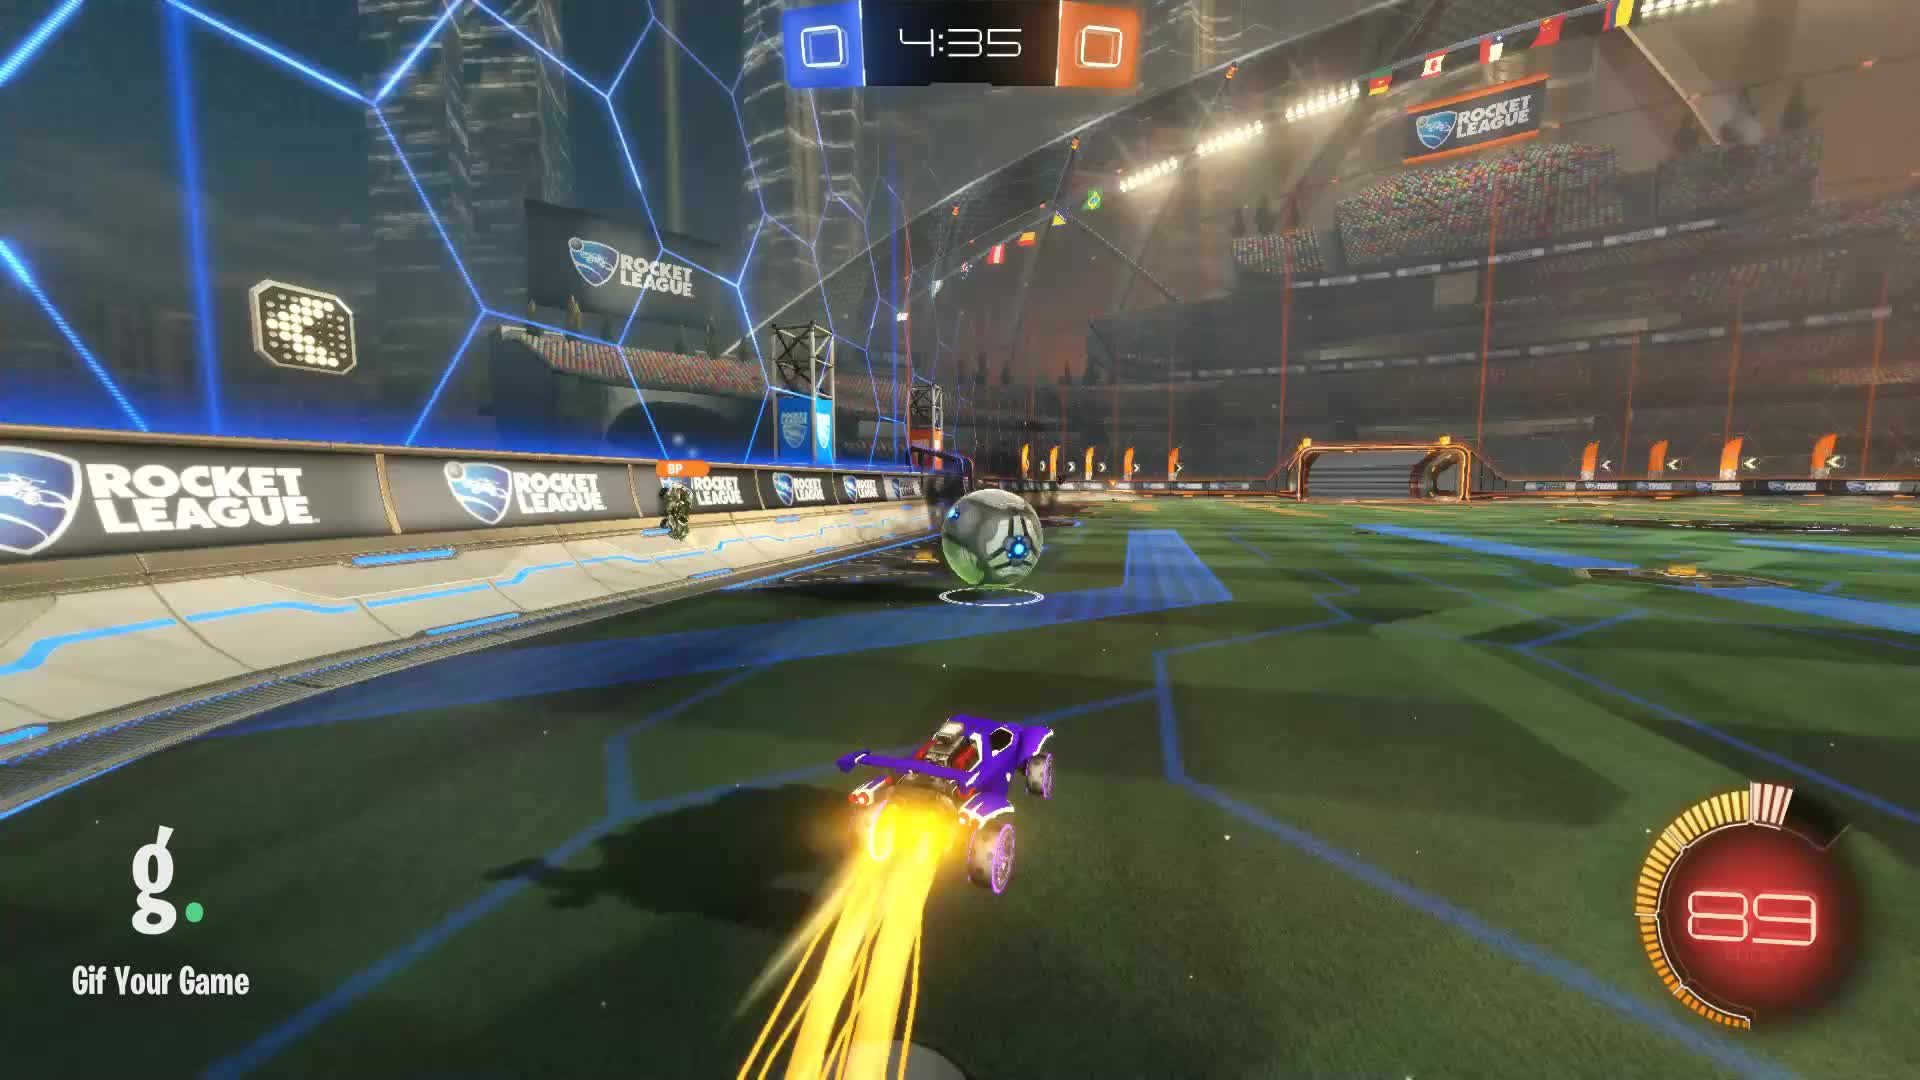 Doni, Gif Your Game, GifYourGame, Goal, Rocket League, RocketLeague, Goal 1: Doni GIFs